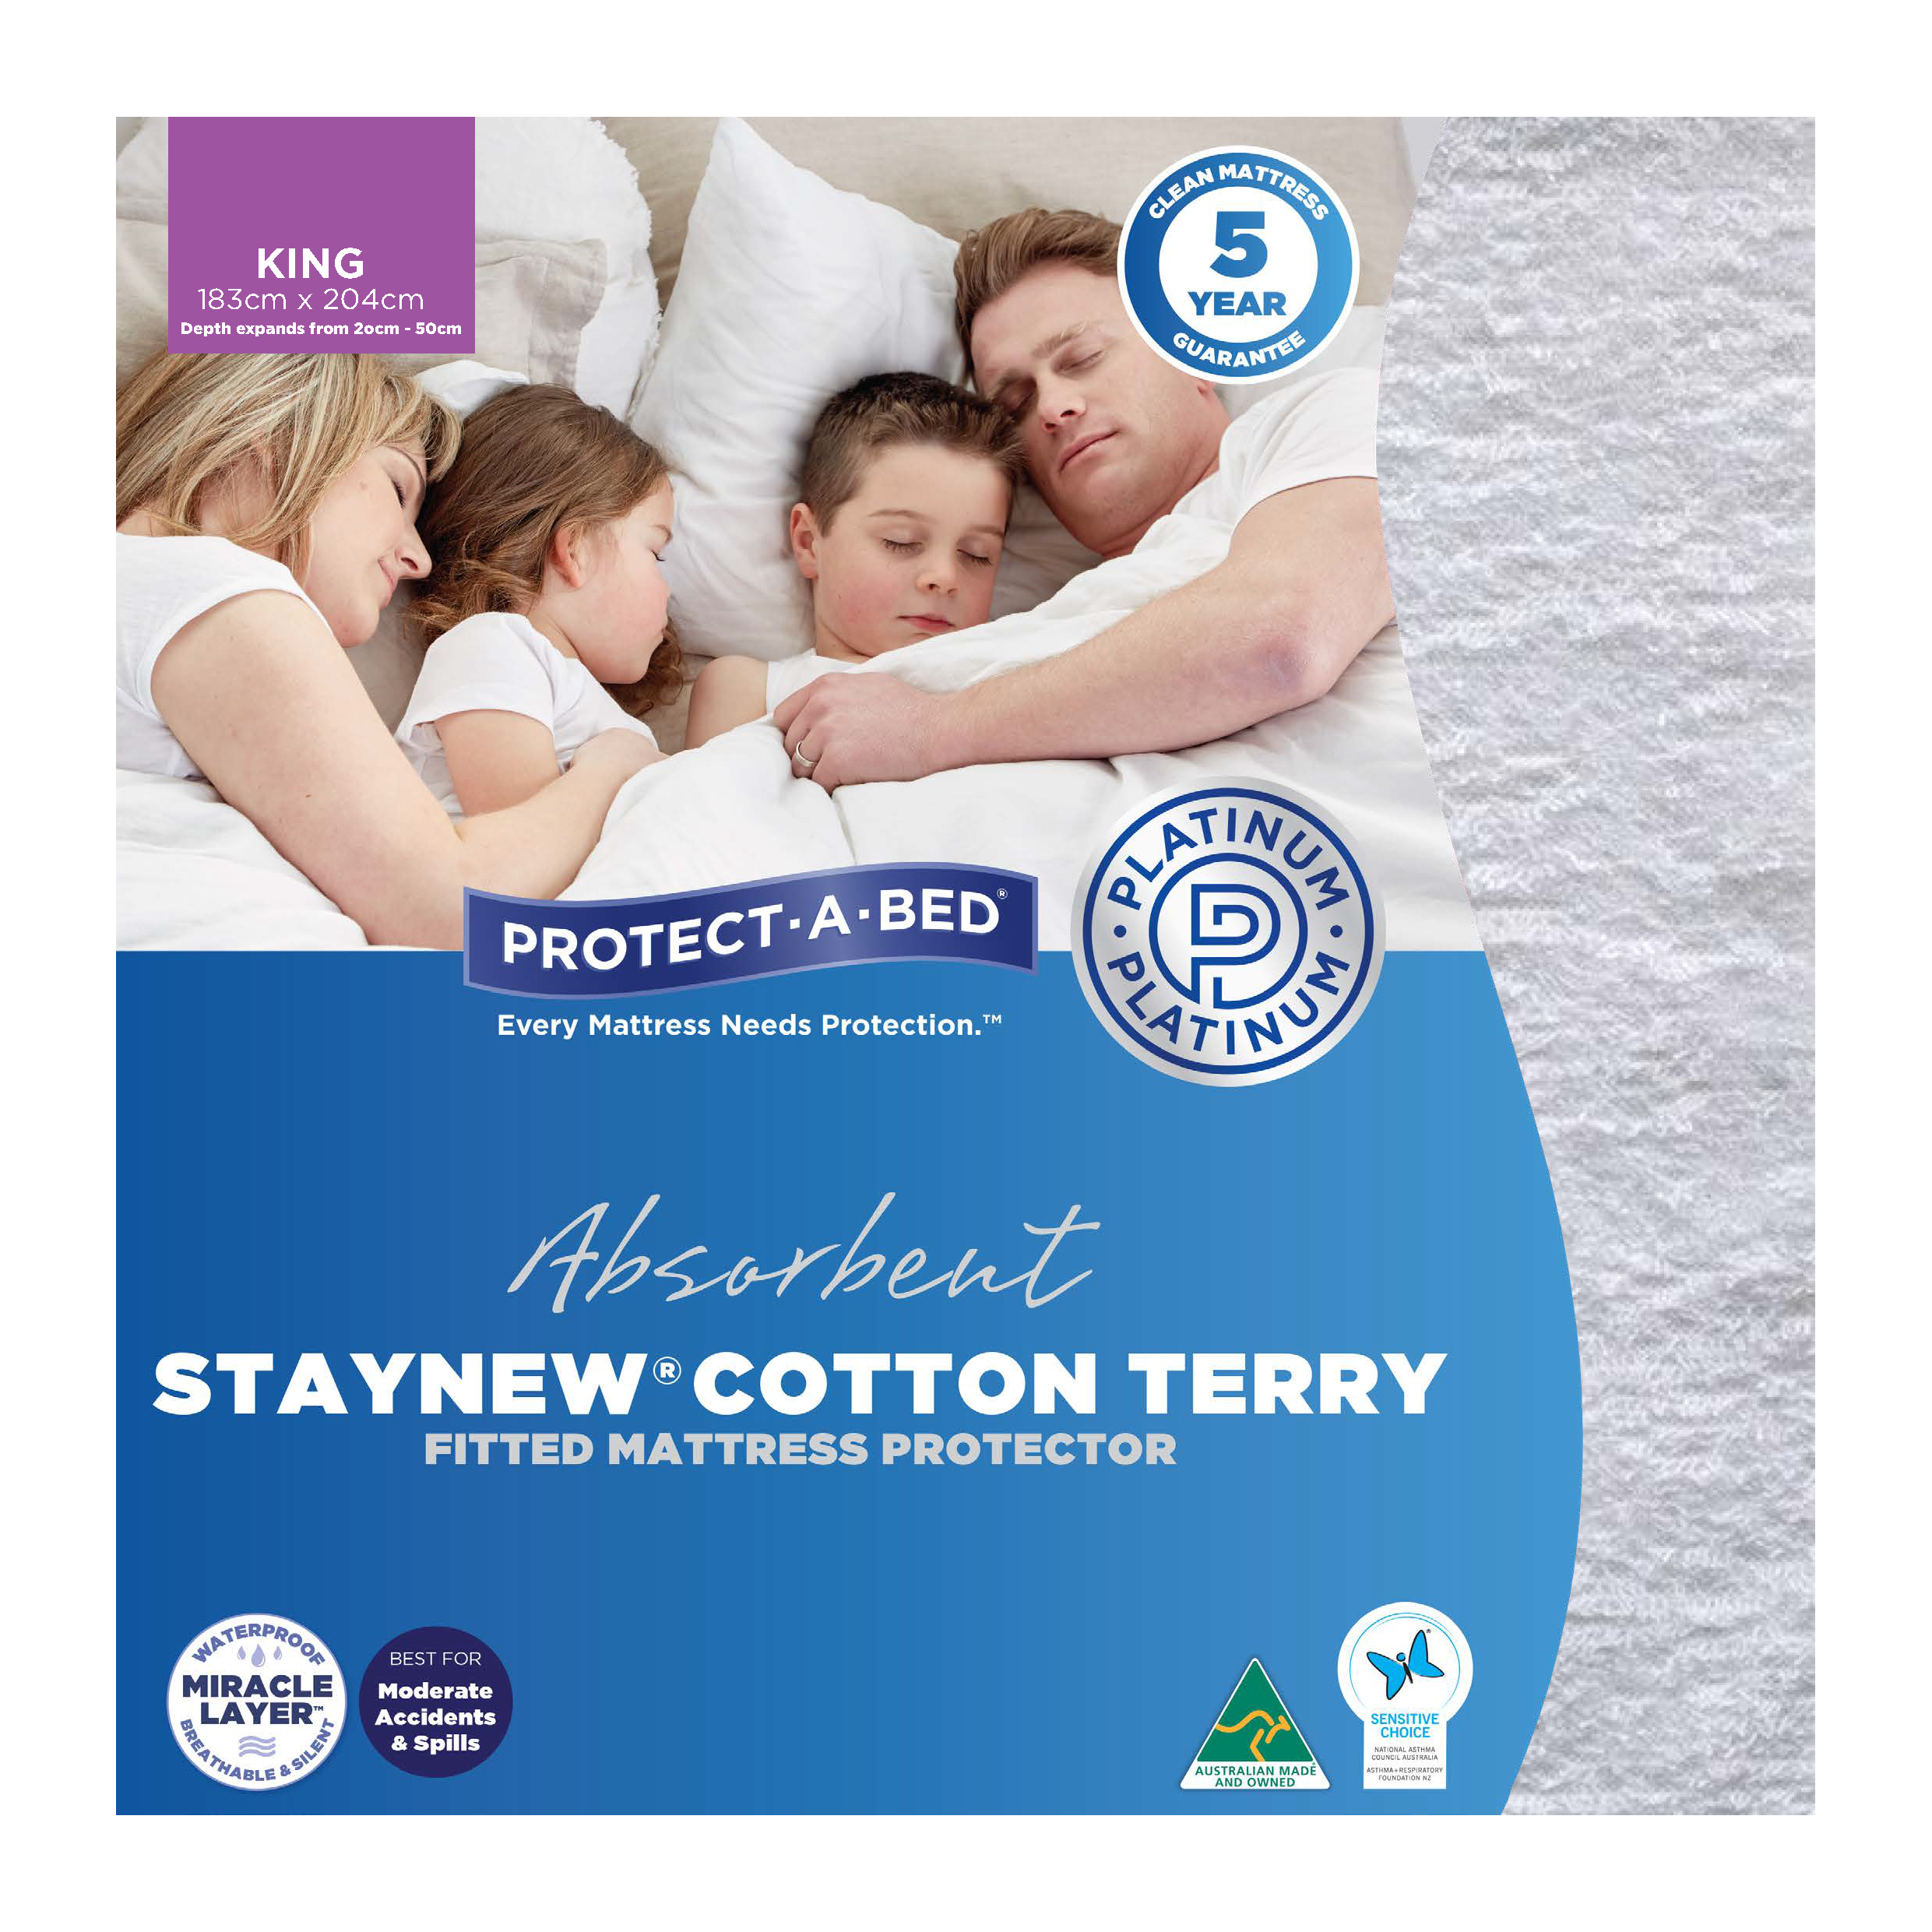 Protect-A-Bed Cotton Terry – King Mattress Protector